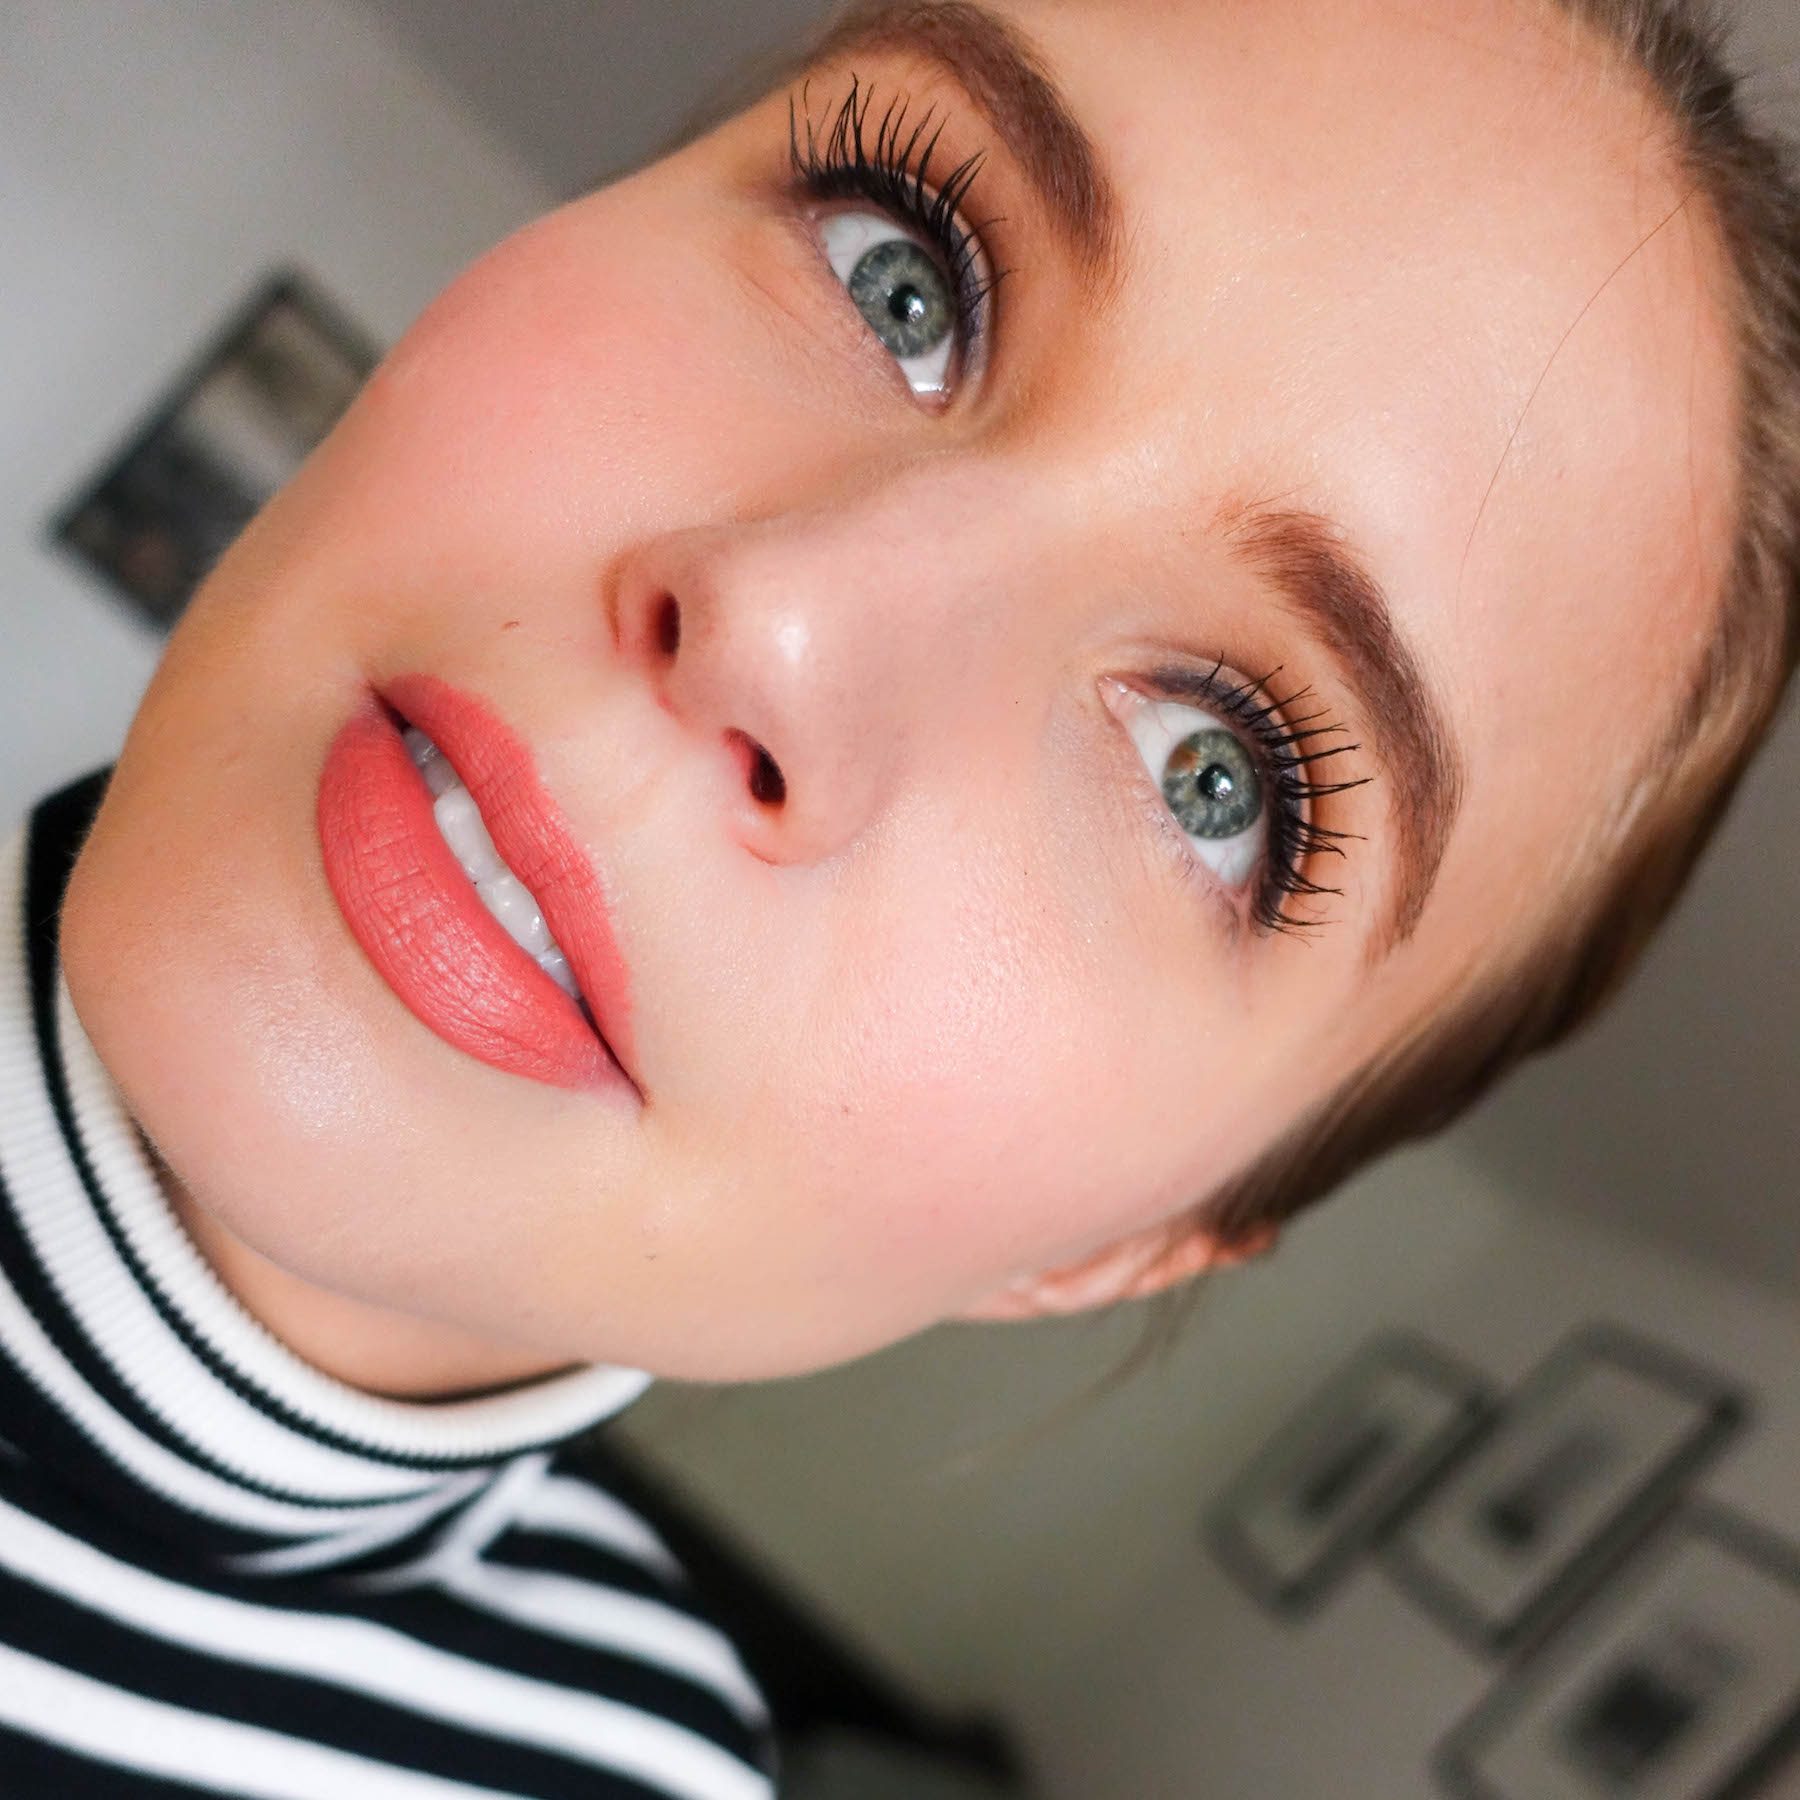 Lancôme monsieur big mascara review test suelovesnyc_susan_fengler_lancome_monsieur_big_mascara_review_testbericht